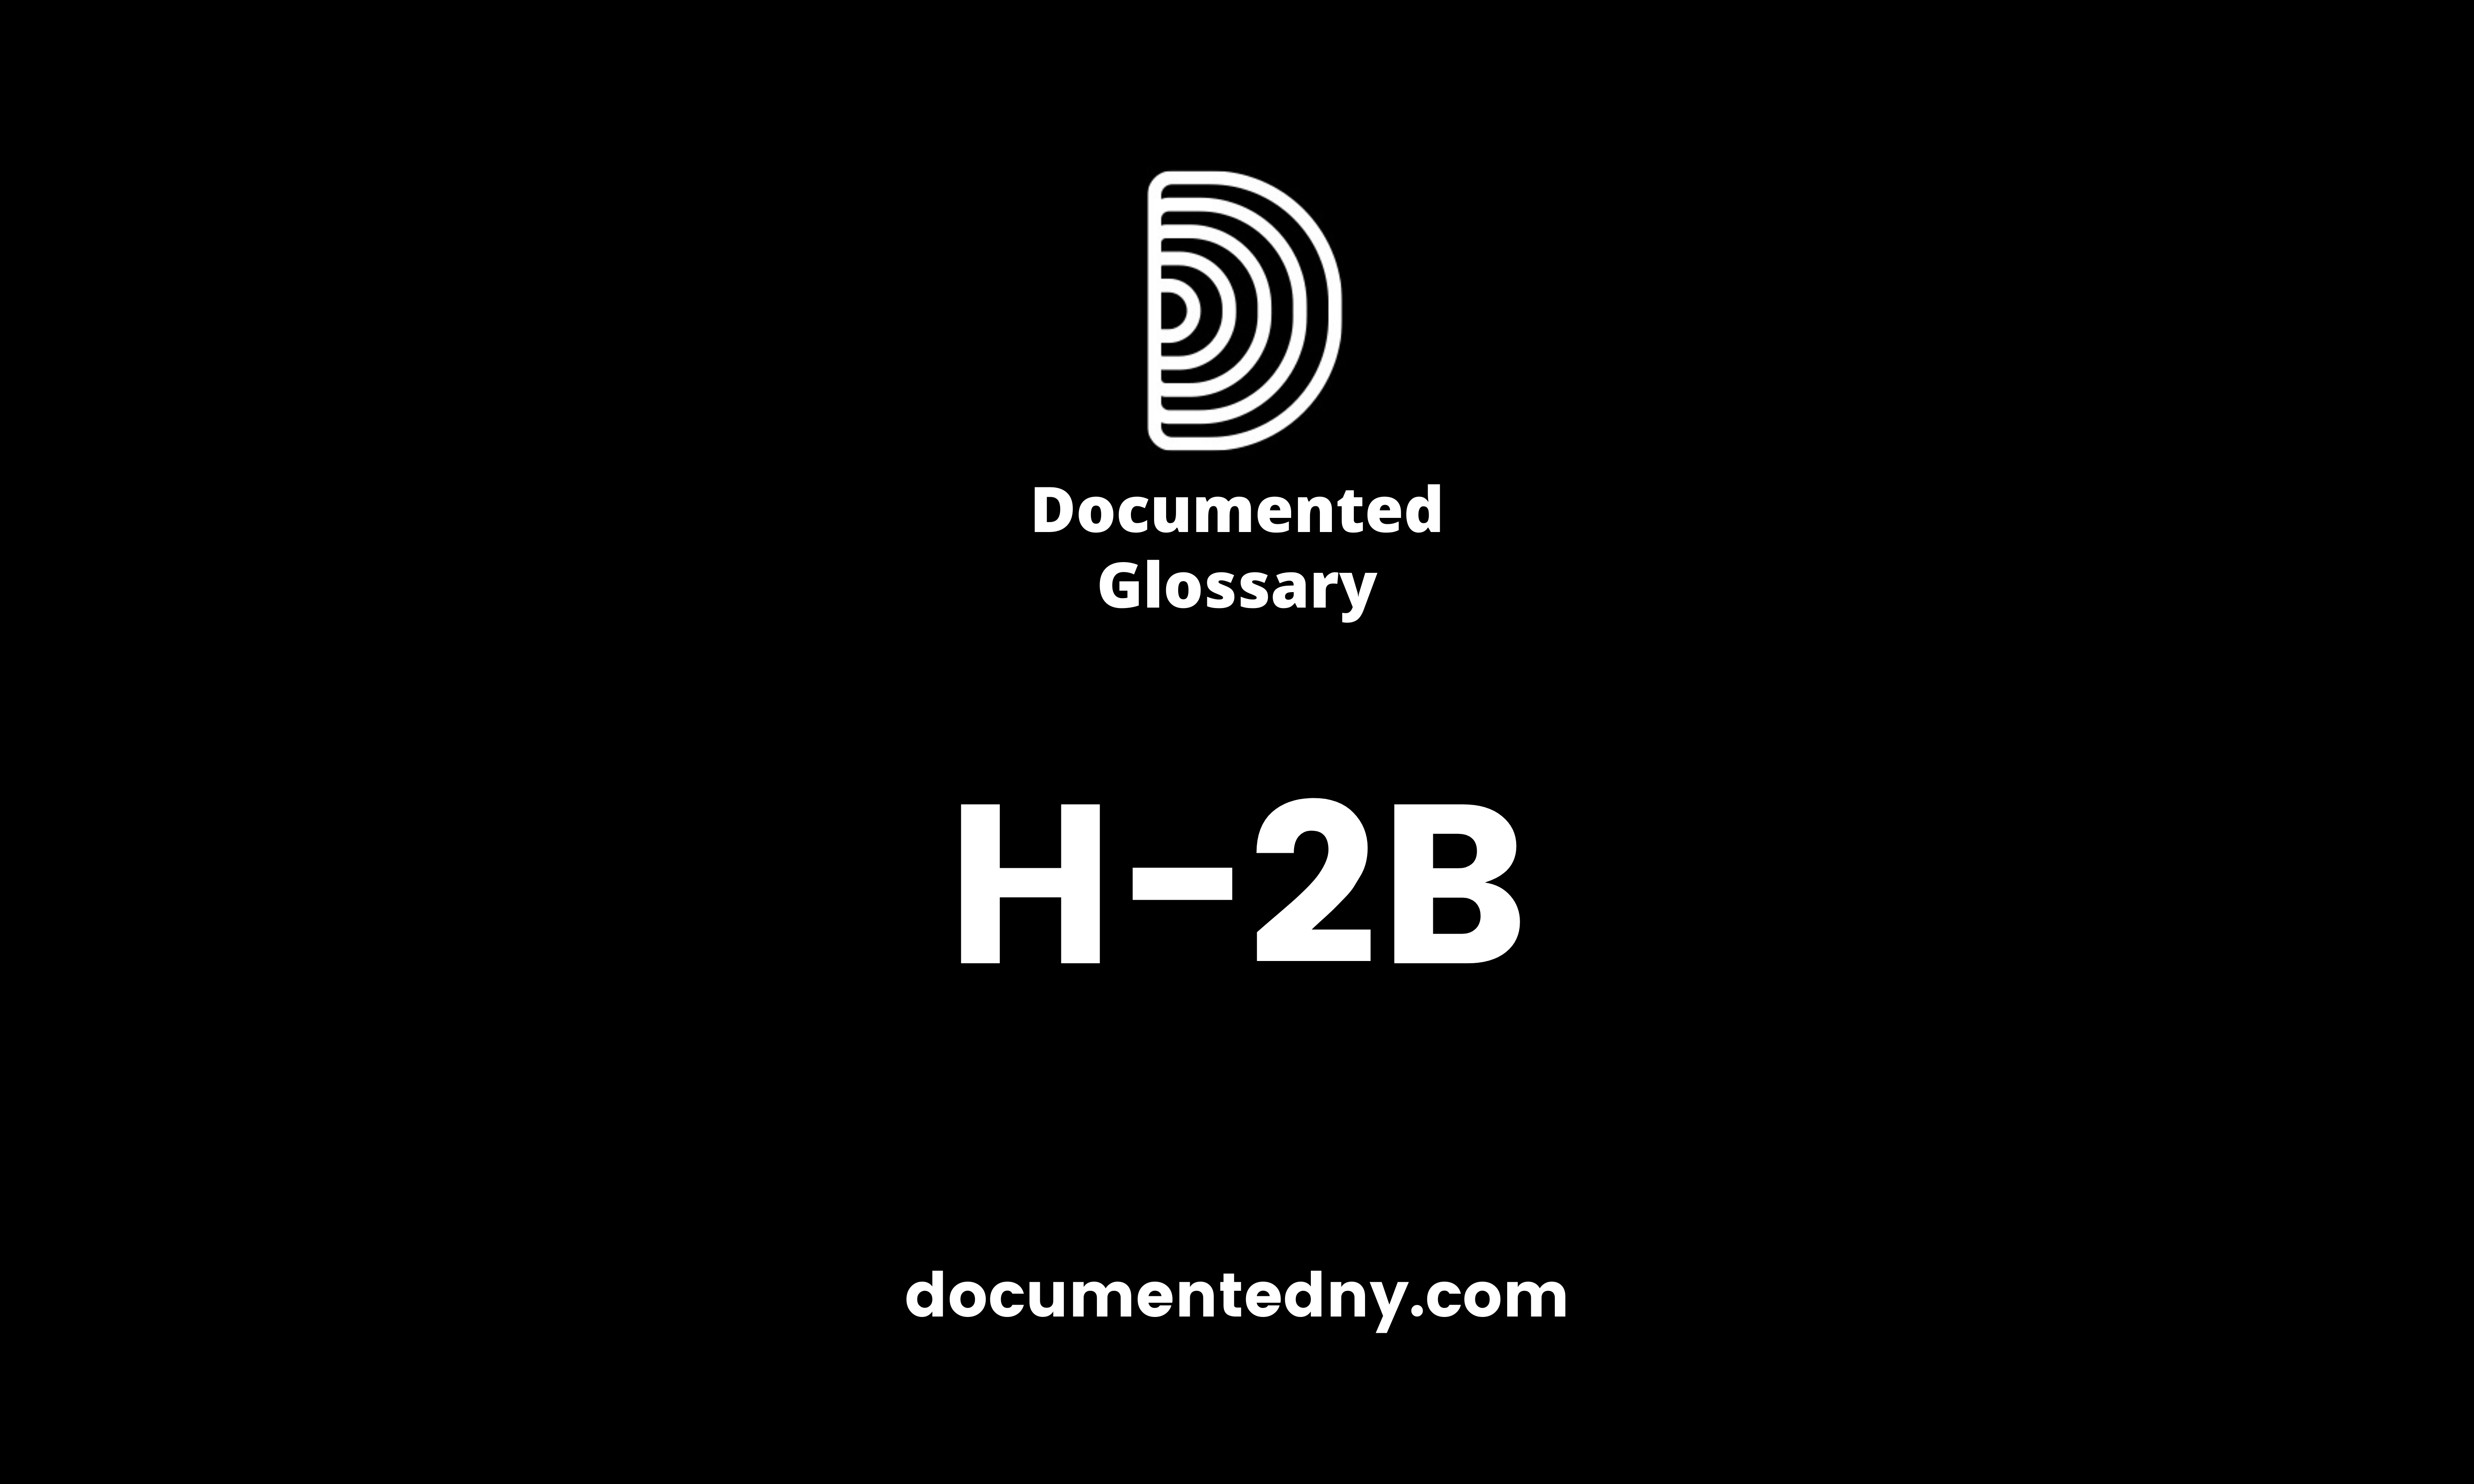 The H-2B program allows U.S. employers or U.S. agents who meet specific regulatory requirements to bring foreign nationals to the United States to fill temporary nonagricultural jobs.